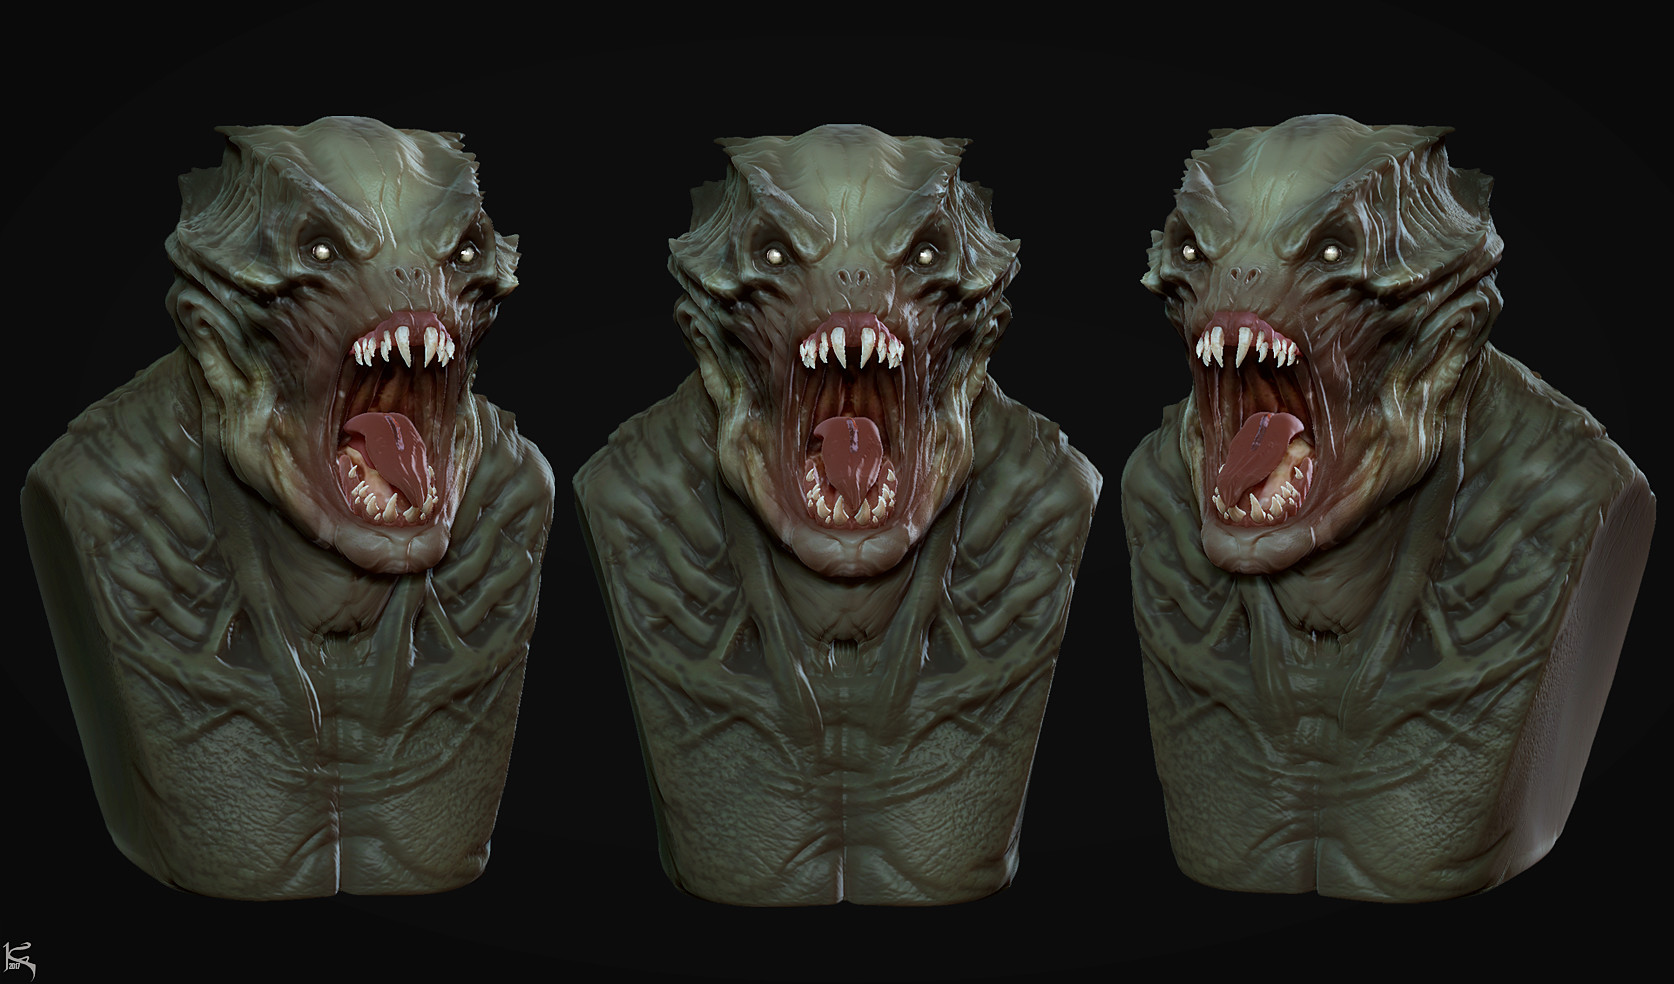 kenny-carmody-creature63-zbrush-screengrab.jpg